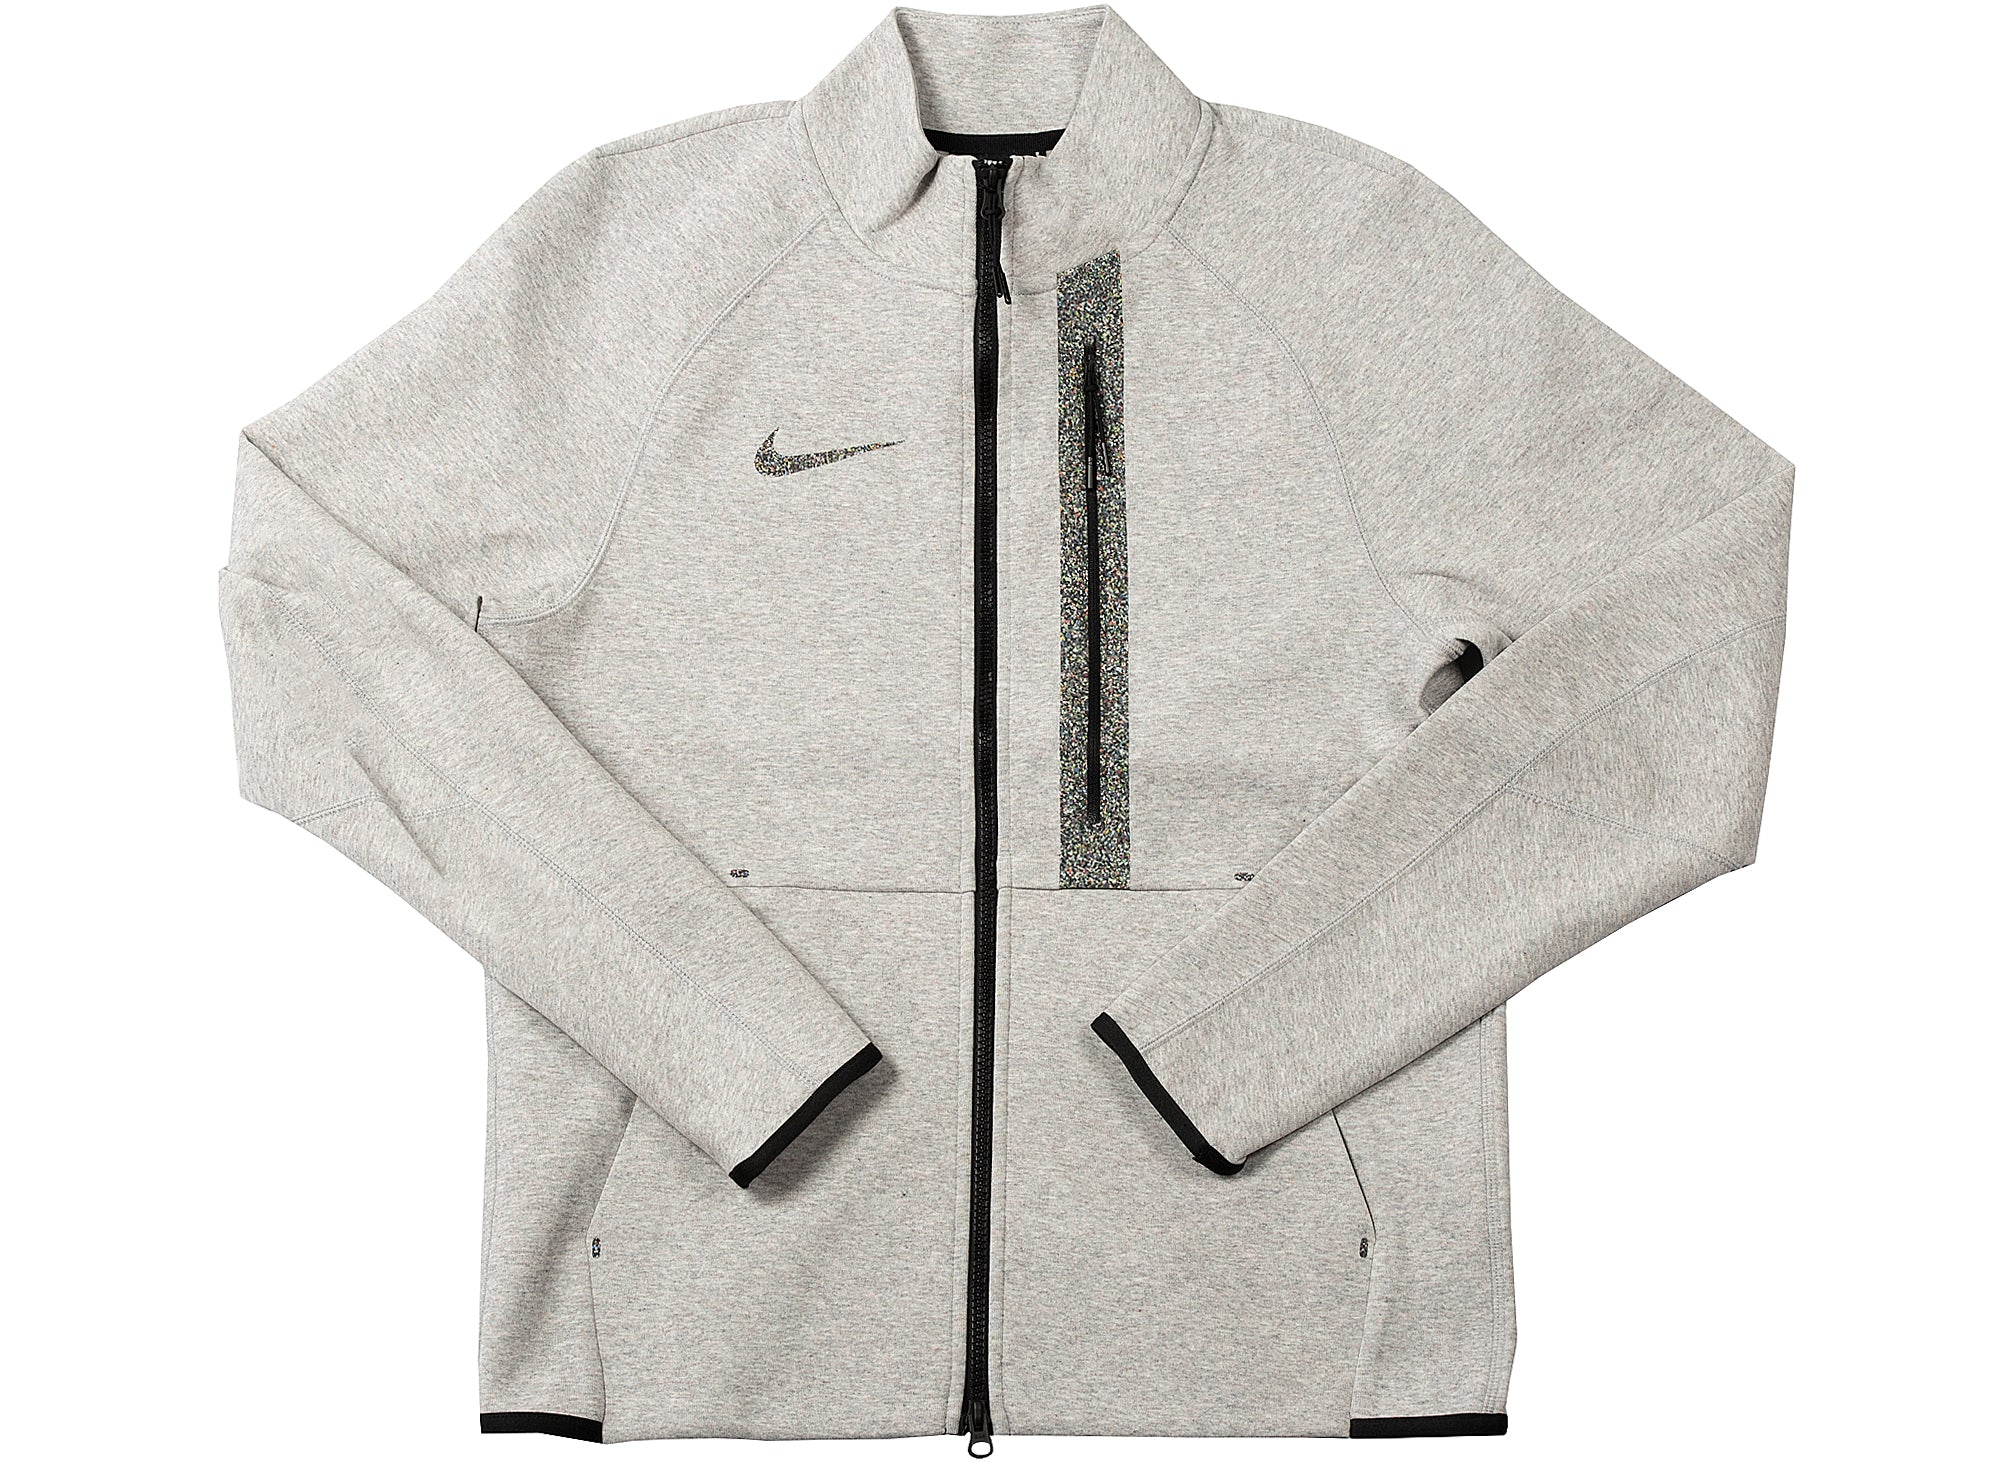 Nike 50 Tech Fleece Jacket Oneness Boutique